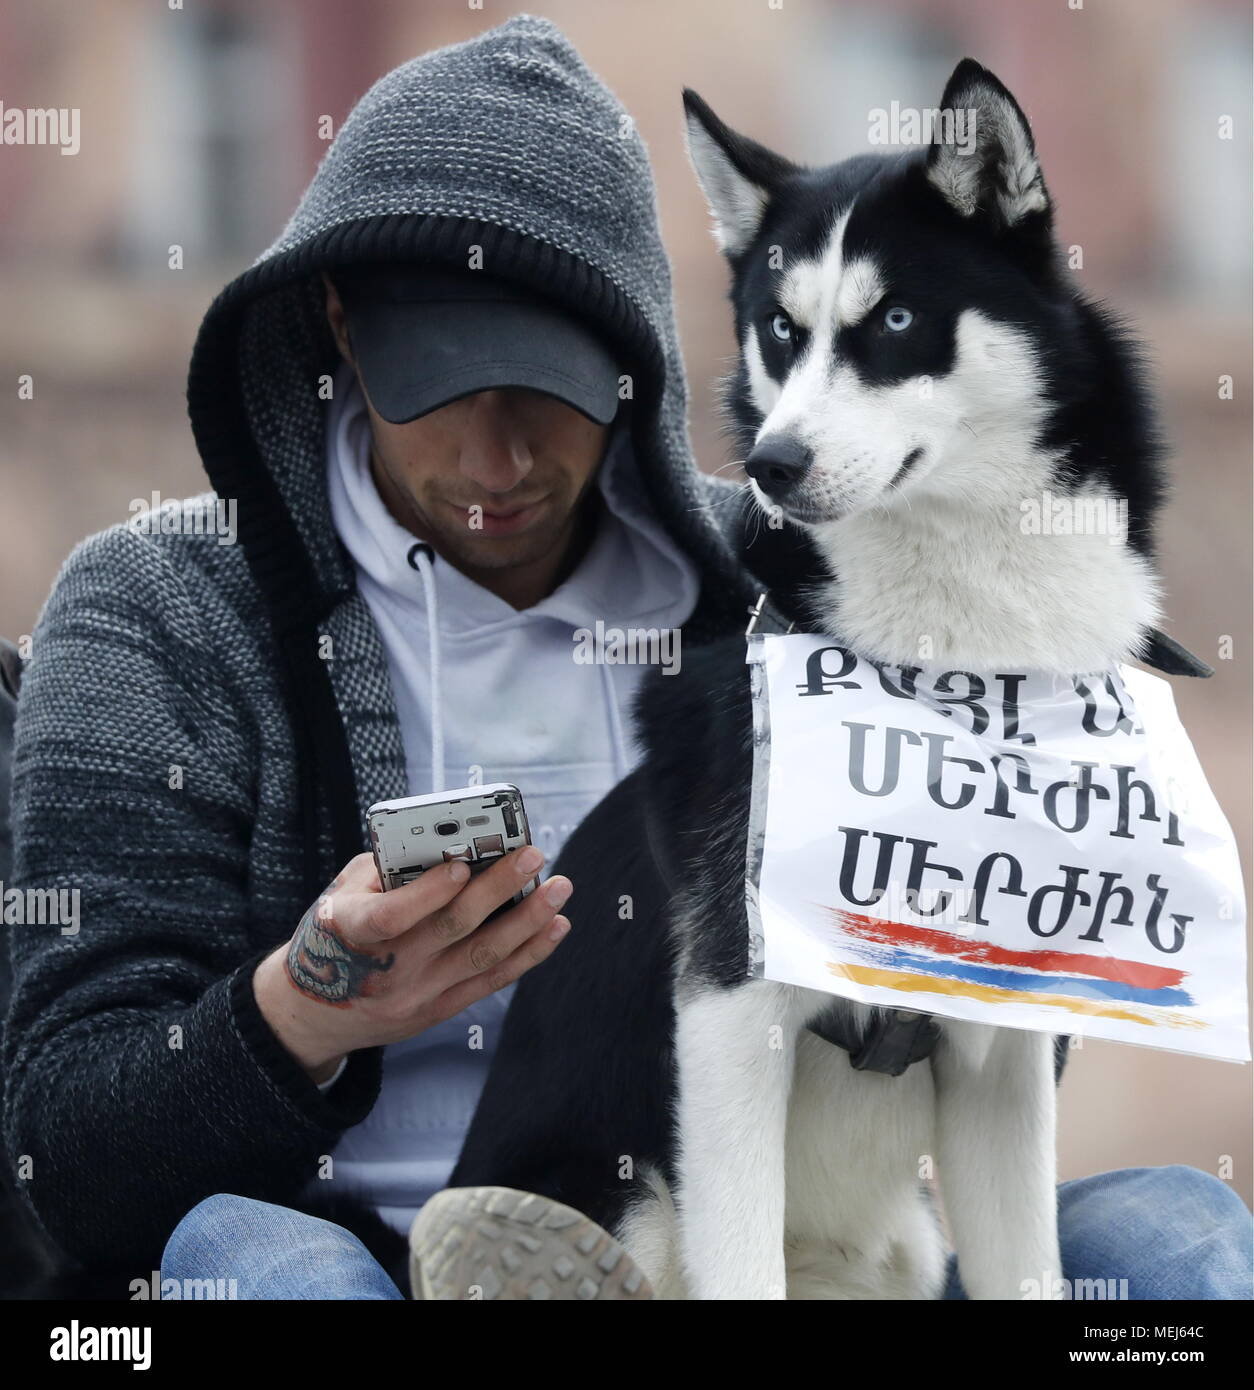 Yerevan, Armenia. 21st Apr, 2018. YEREVAN, ARMENIA - APRIL 21, 2018: A man and a dog during a protest against the election of former Armenian President Sargsyan as Prime Minister; Serzh Sargsyan has been elected Prime Minister by the National Assembly of Armenia. Artyom Geodakyan/TASS Credit: ITAR-TASS News Agency/Alamy Live News - Stock Image